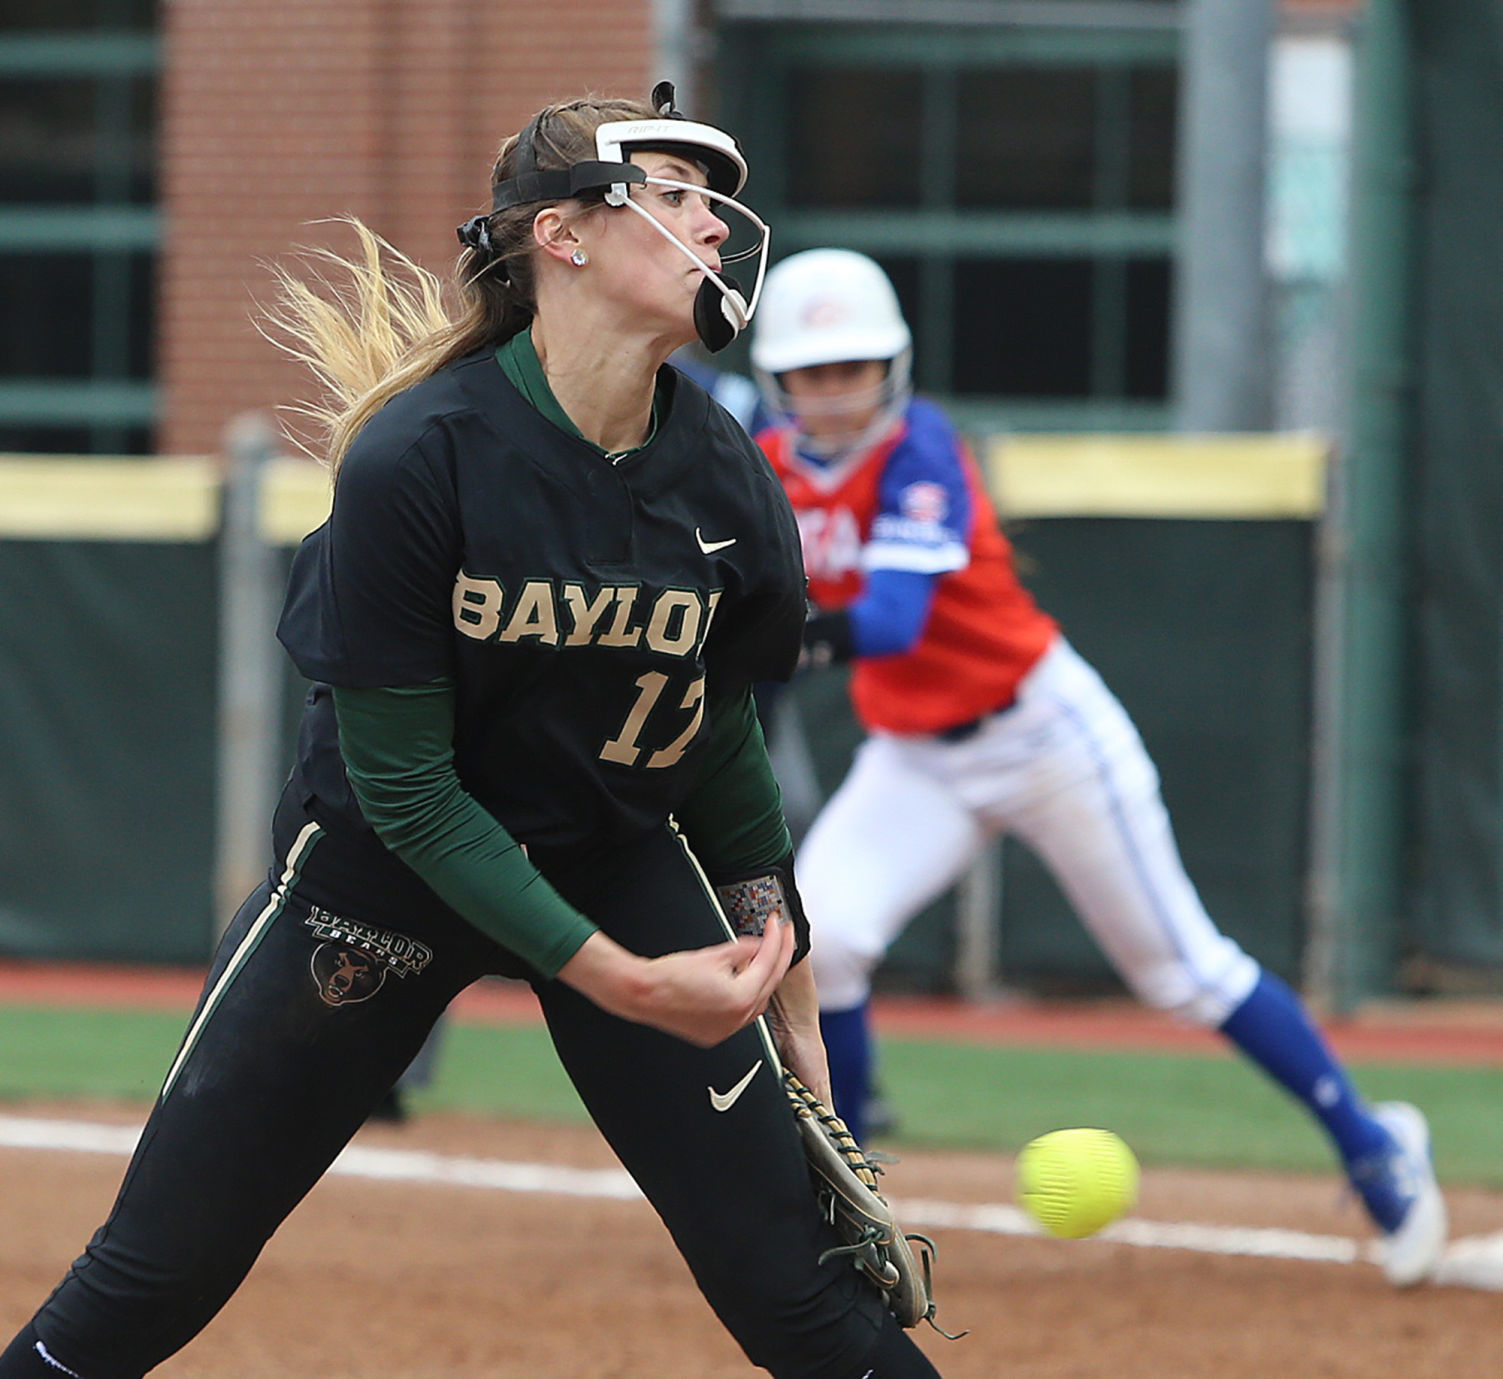 Garage Games Invitational Lady Bears Host Strong Baylor Invitational Field Baylor Softball